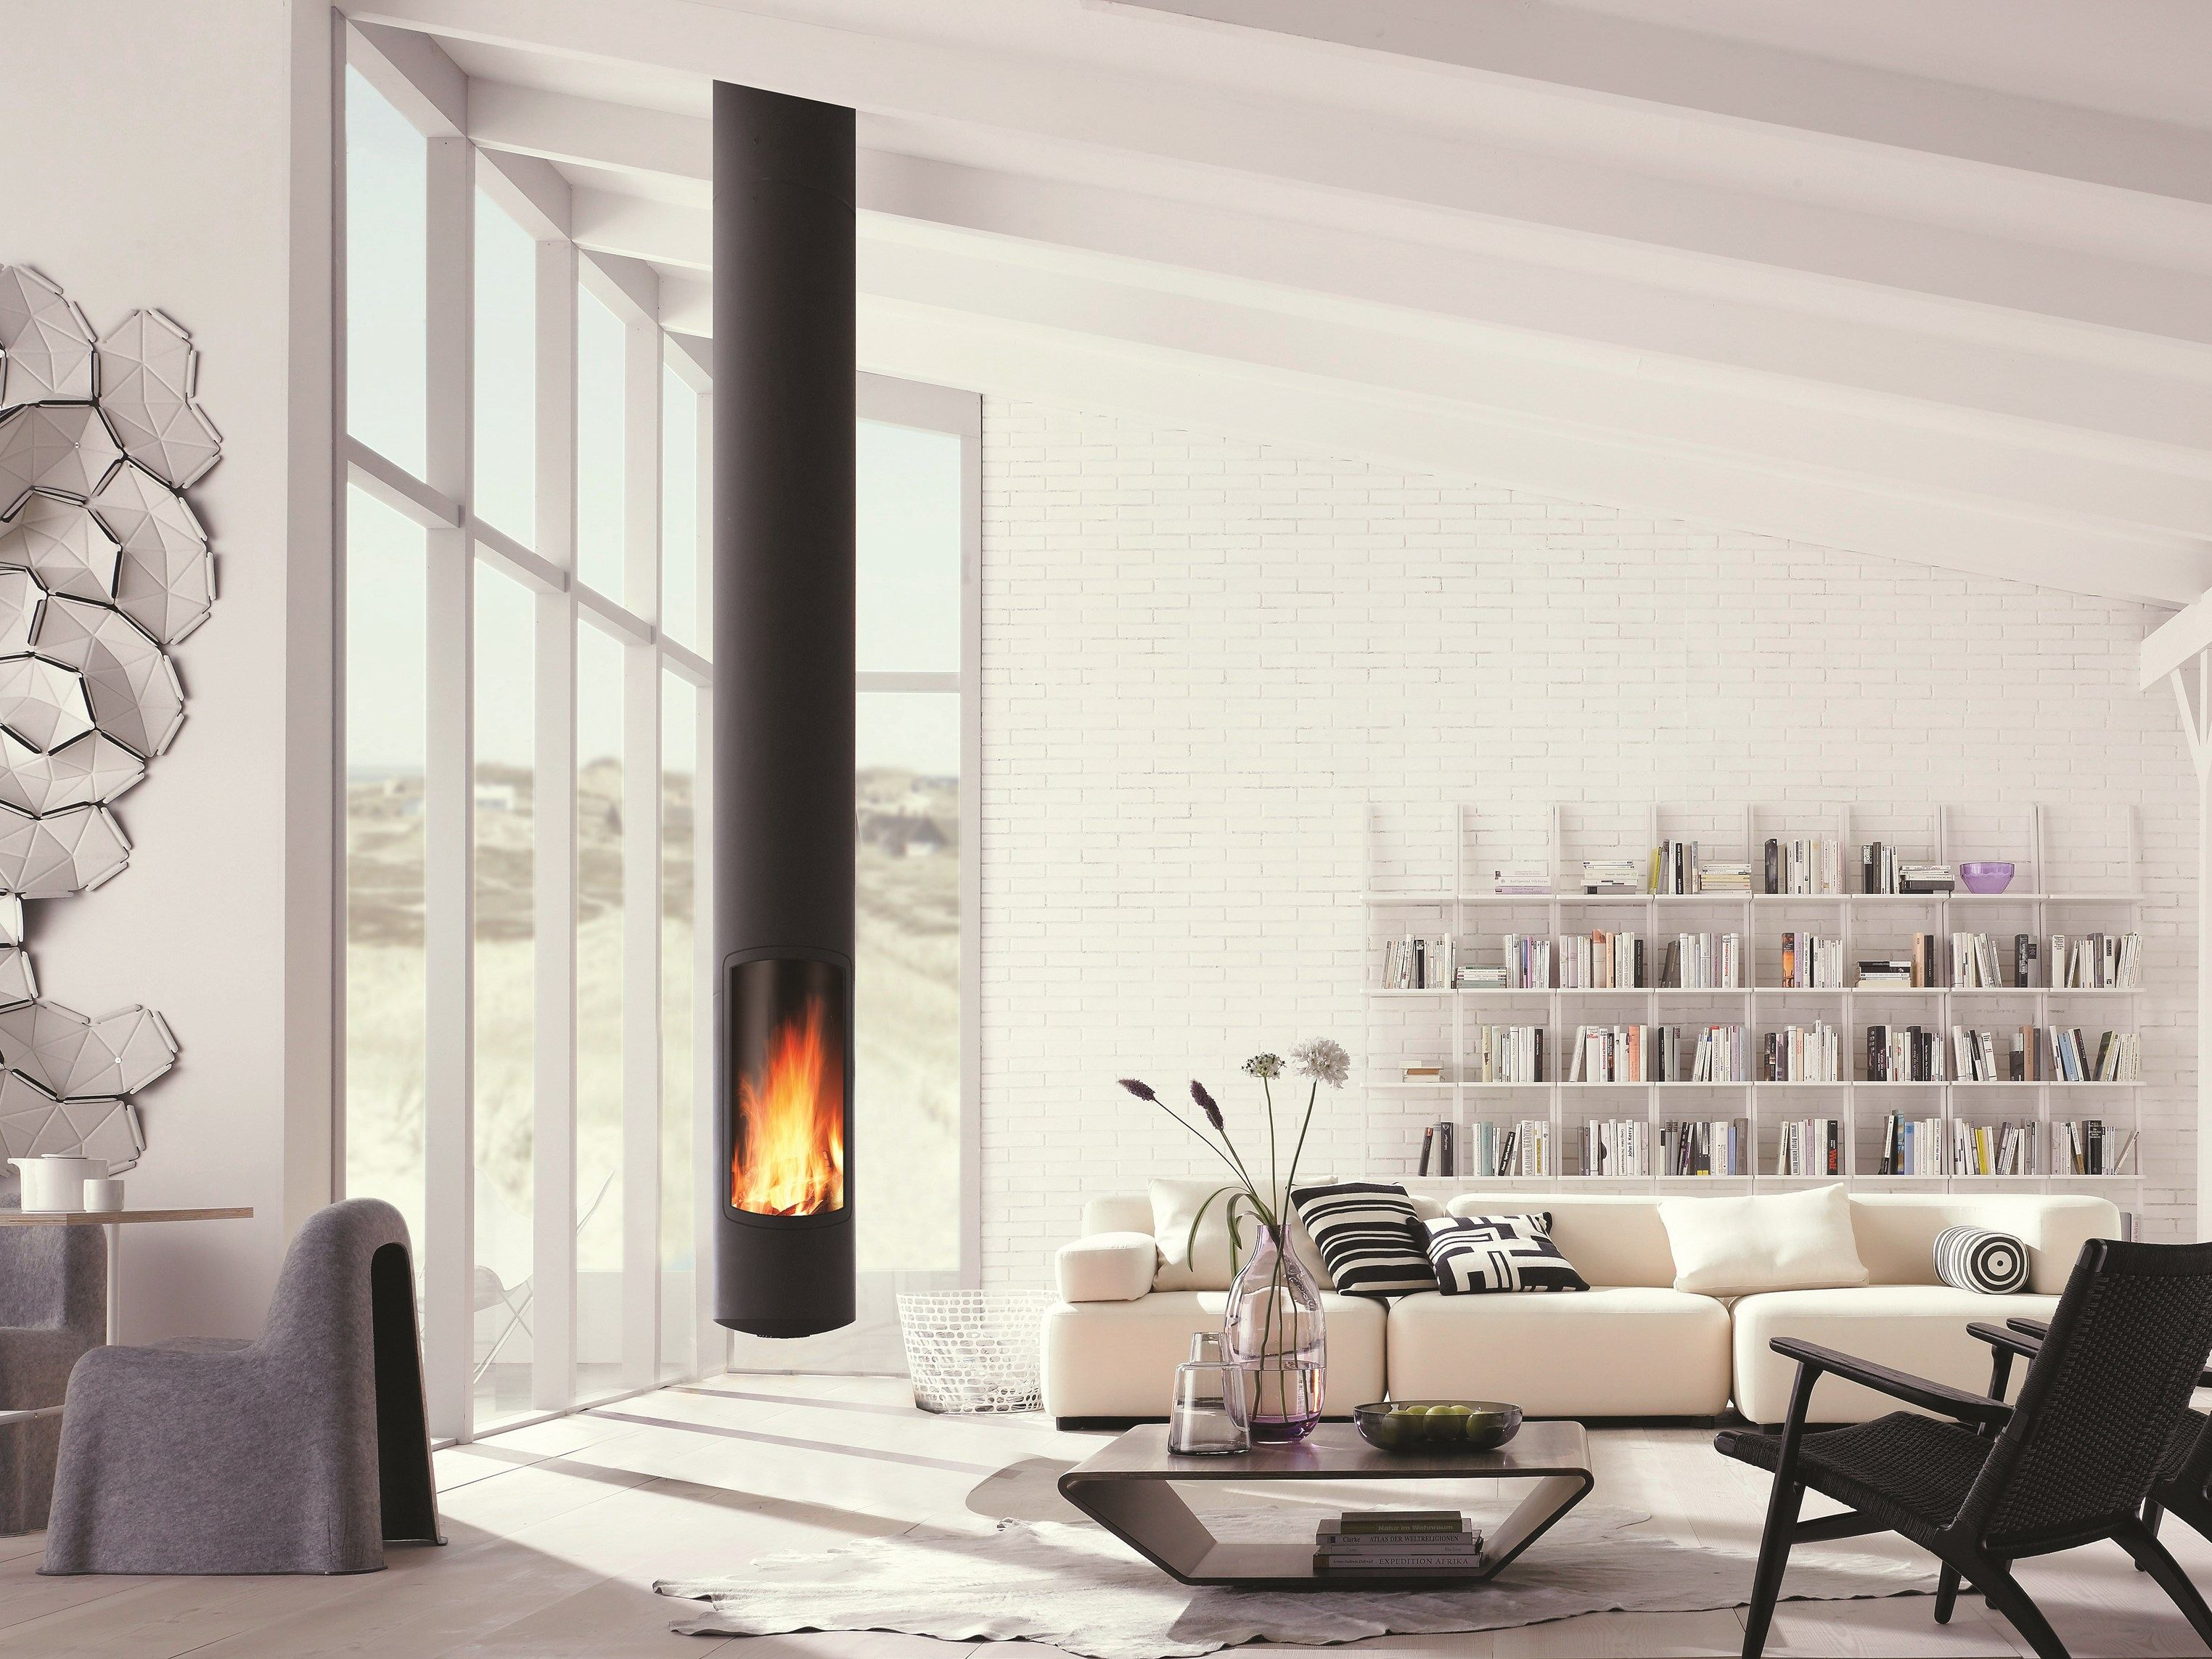 Wood Burning Central Hanging Fireplace Slimfocus Slimfocus Collection By Focus Design Dominique